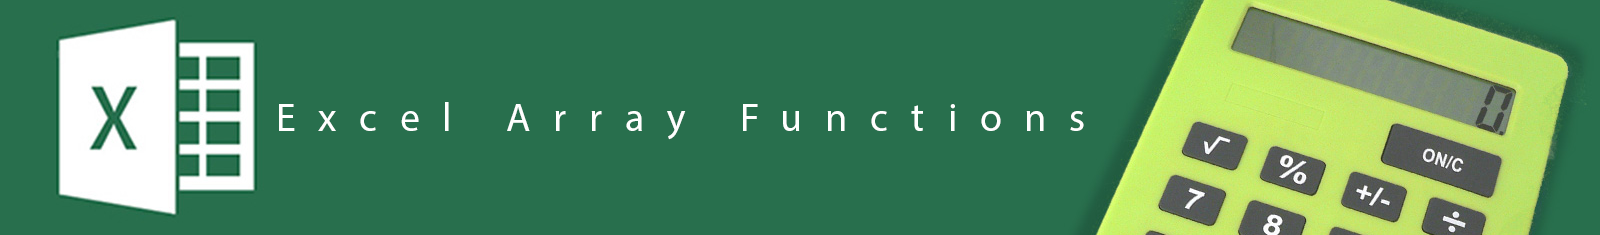 Excel-Array-Functions